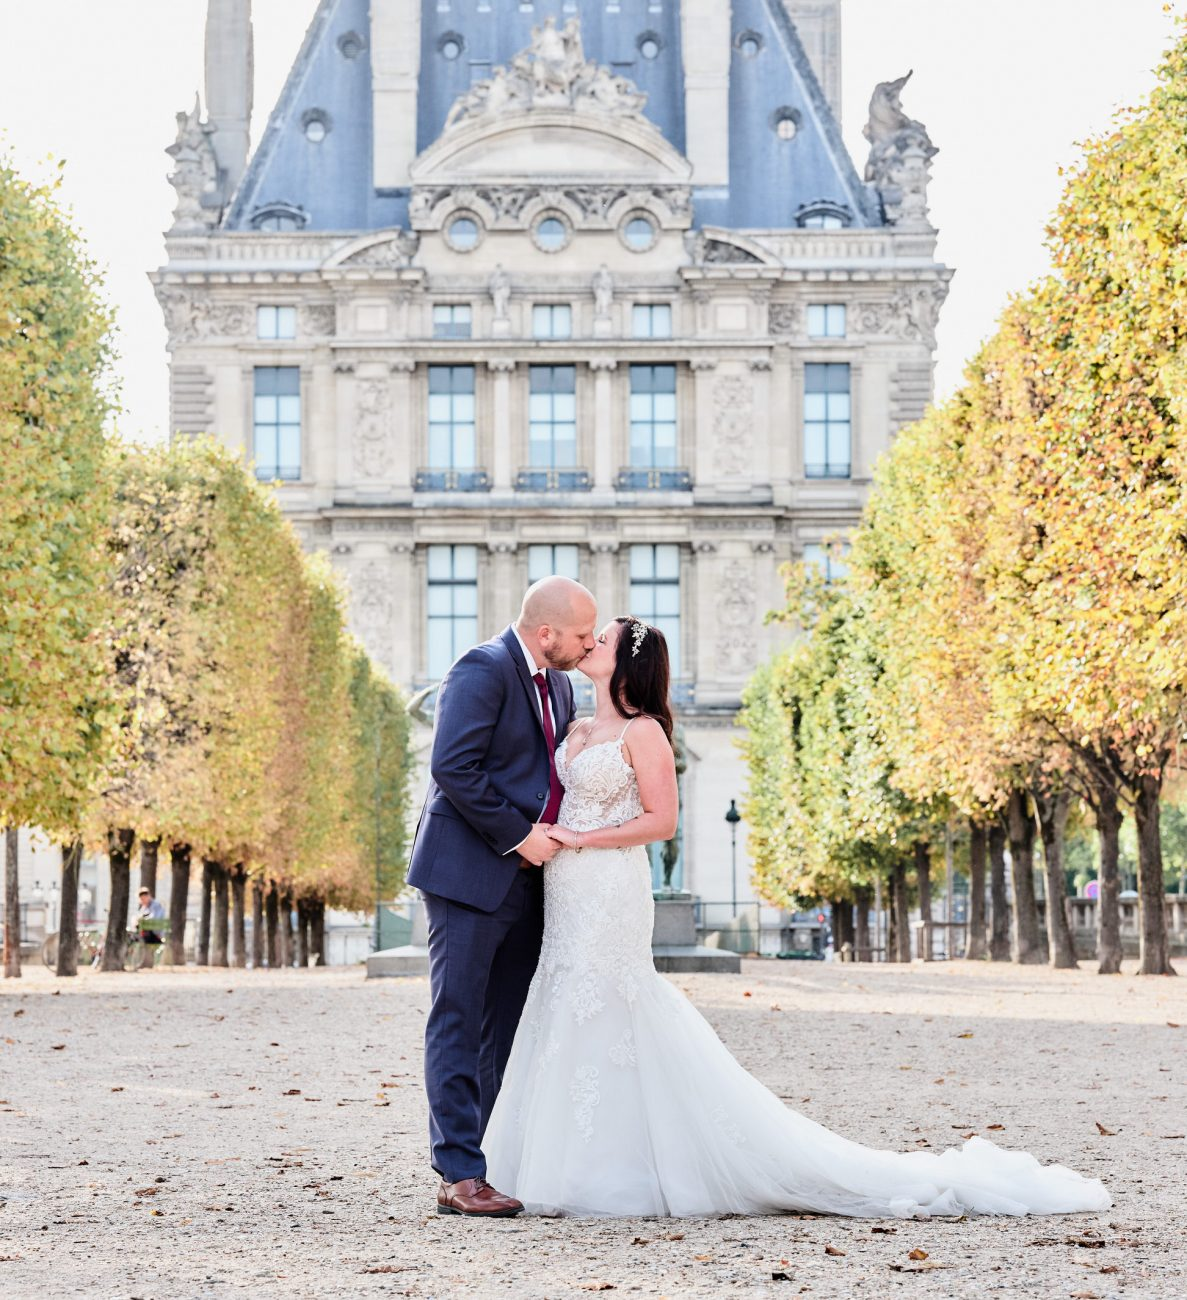 newlyweds kiss at the tuileries gardens in front of the louvre museum in paris